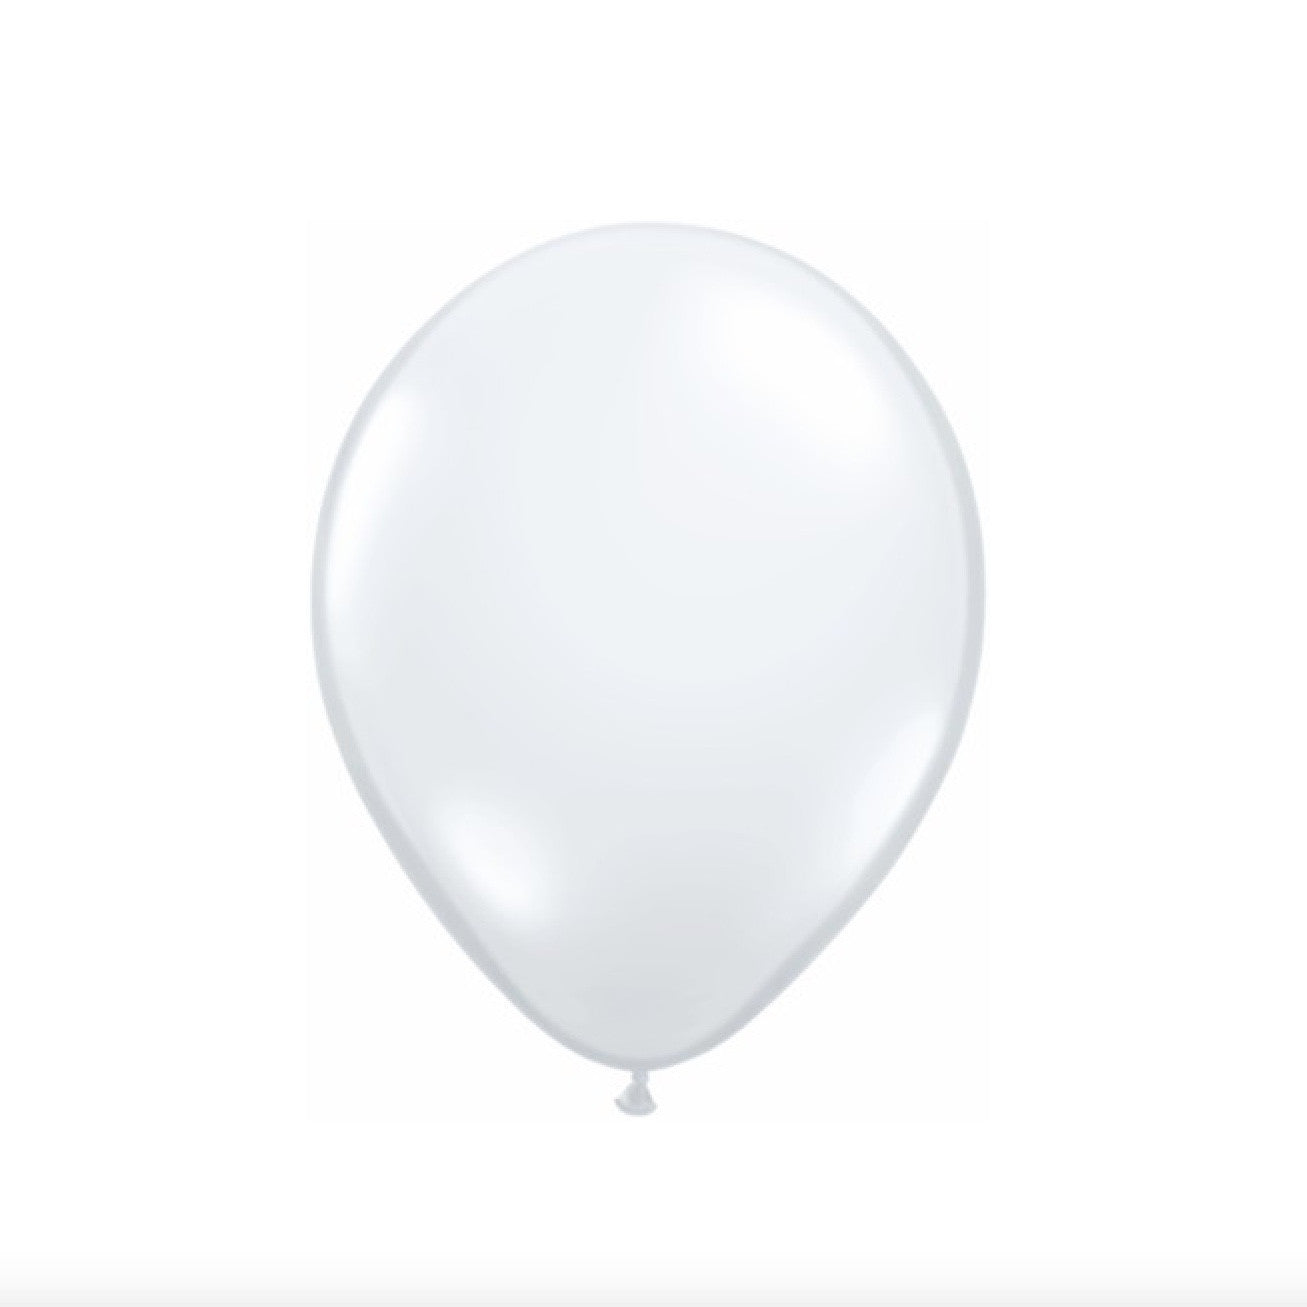 "Diamond Clear Transparent Balloons 5"", SE-Surprize Enterprize, Putti Fine Furnishings"